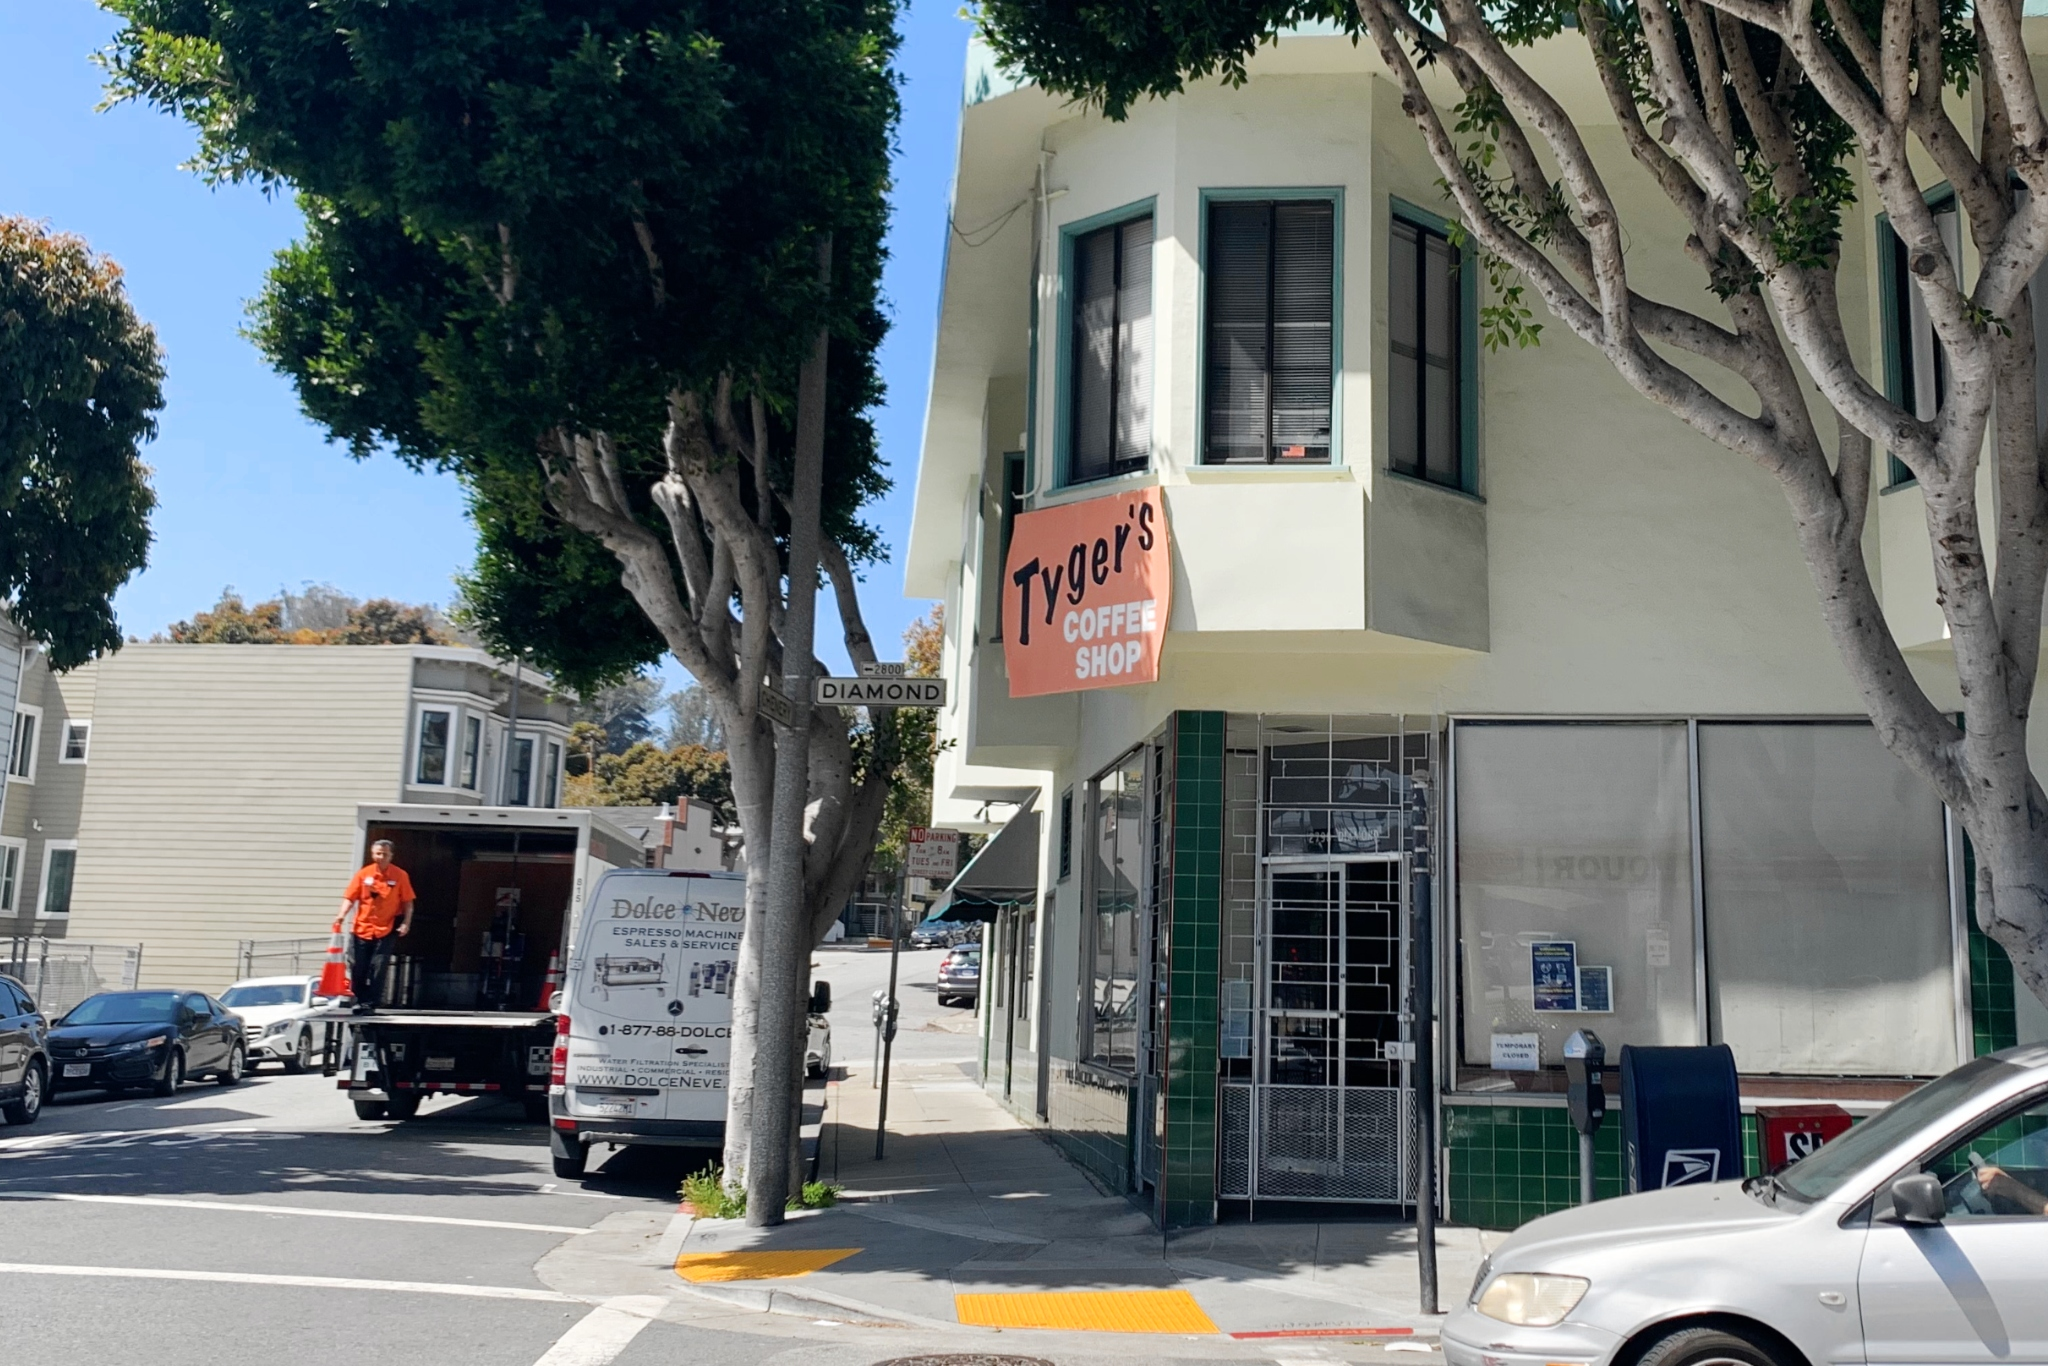 Decades-old Tyger's Coffee Shop quietly closes in San Francisco